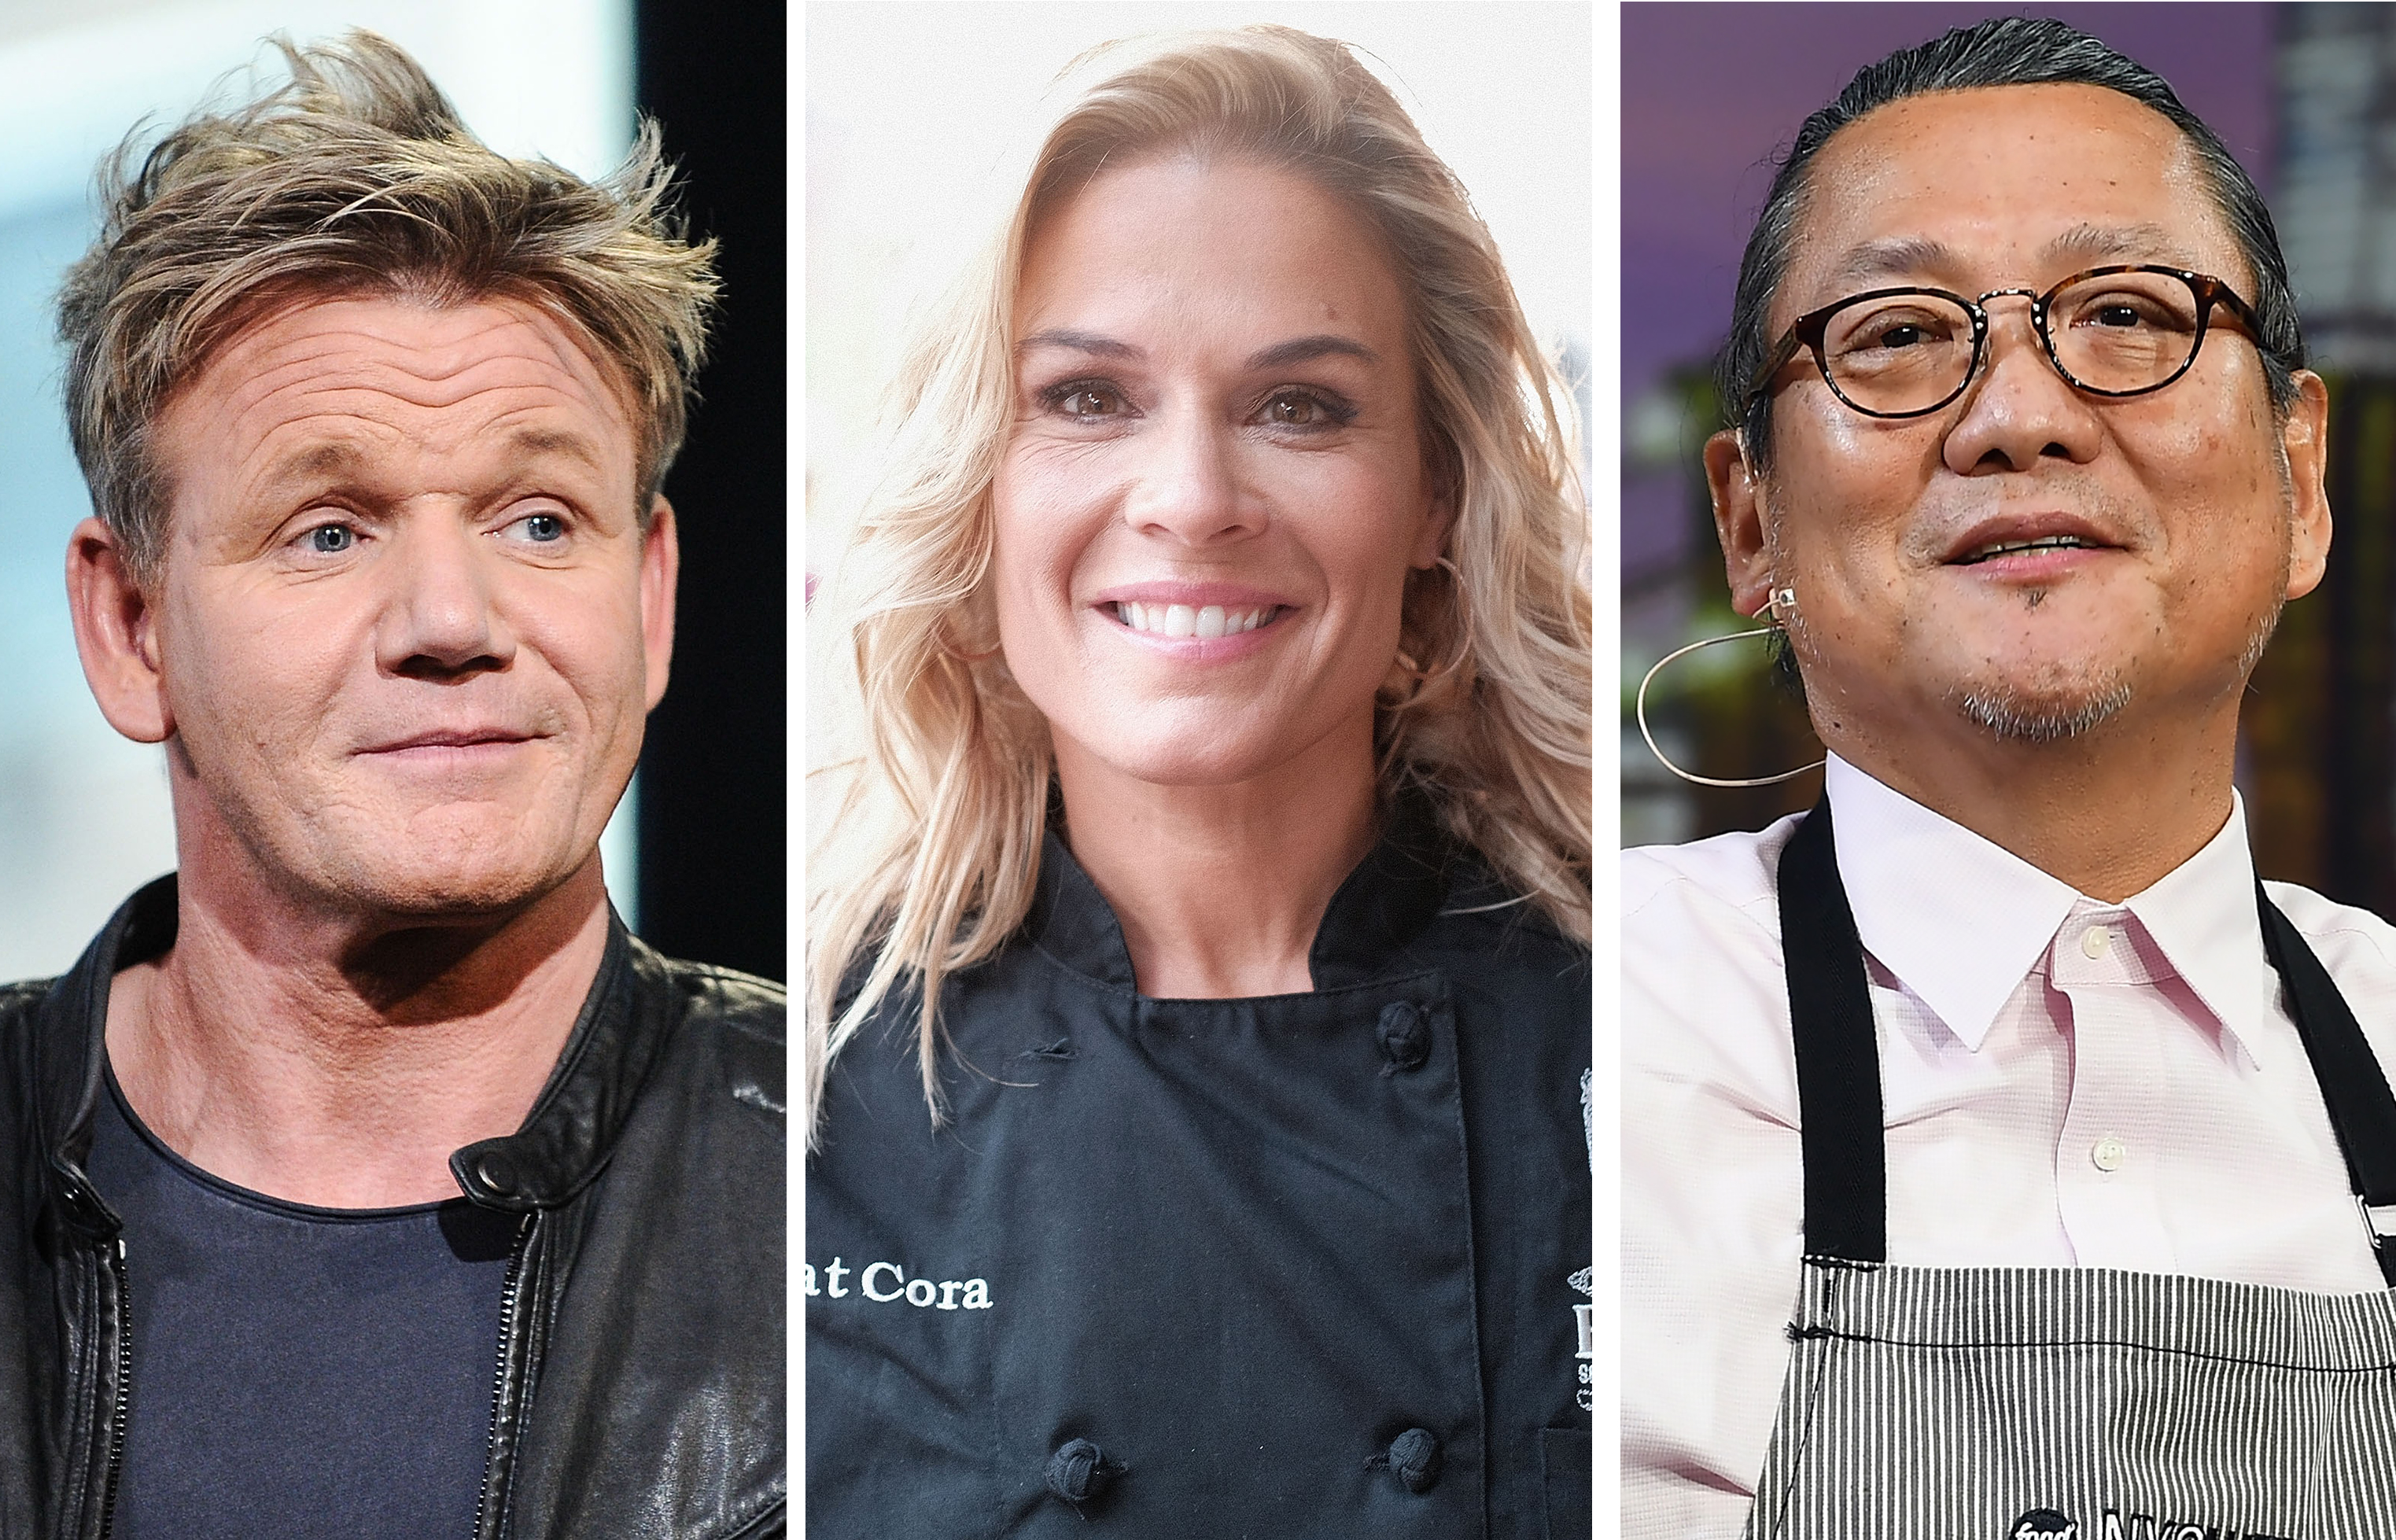 A three-panel photo showinig headshots of Gordon Ramsay, Cat Cora, and Masaharu Morimoto